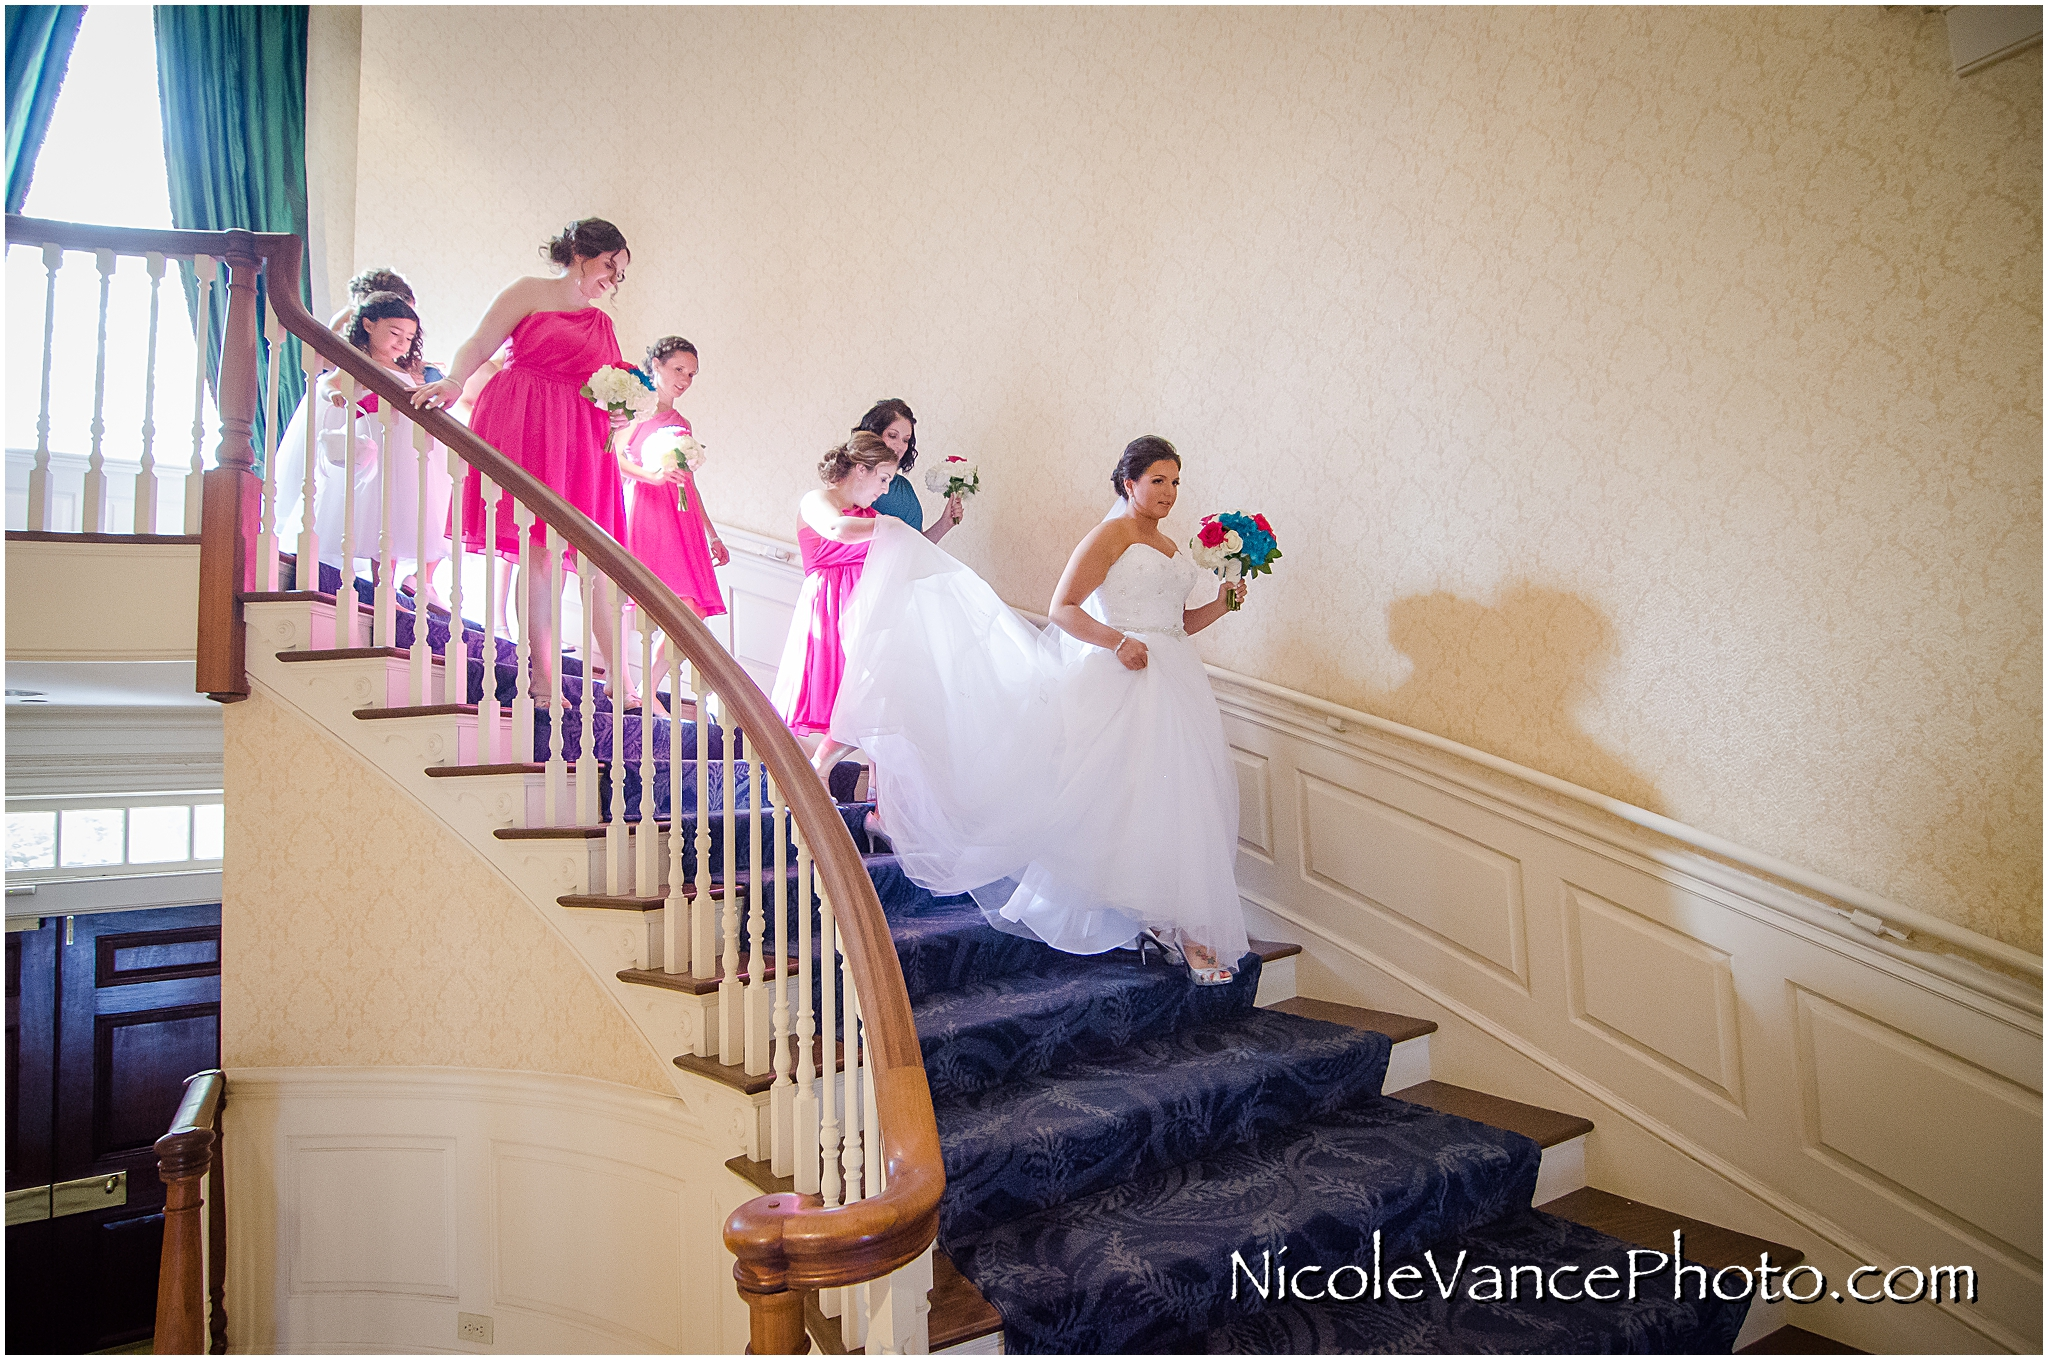 The bridal party makes their way down the stairs at Virginia Crossings.